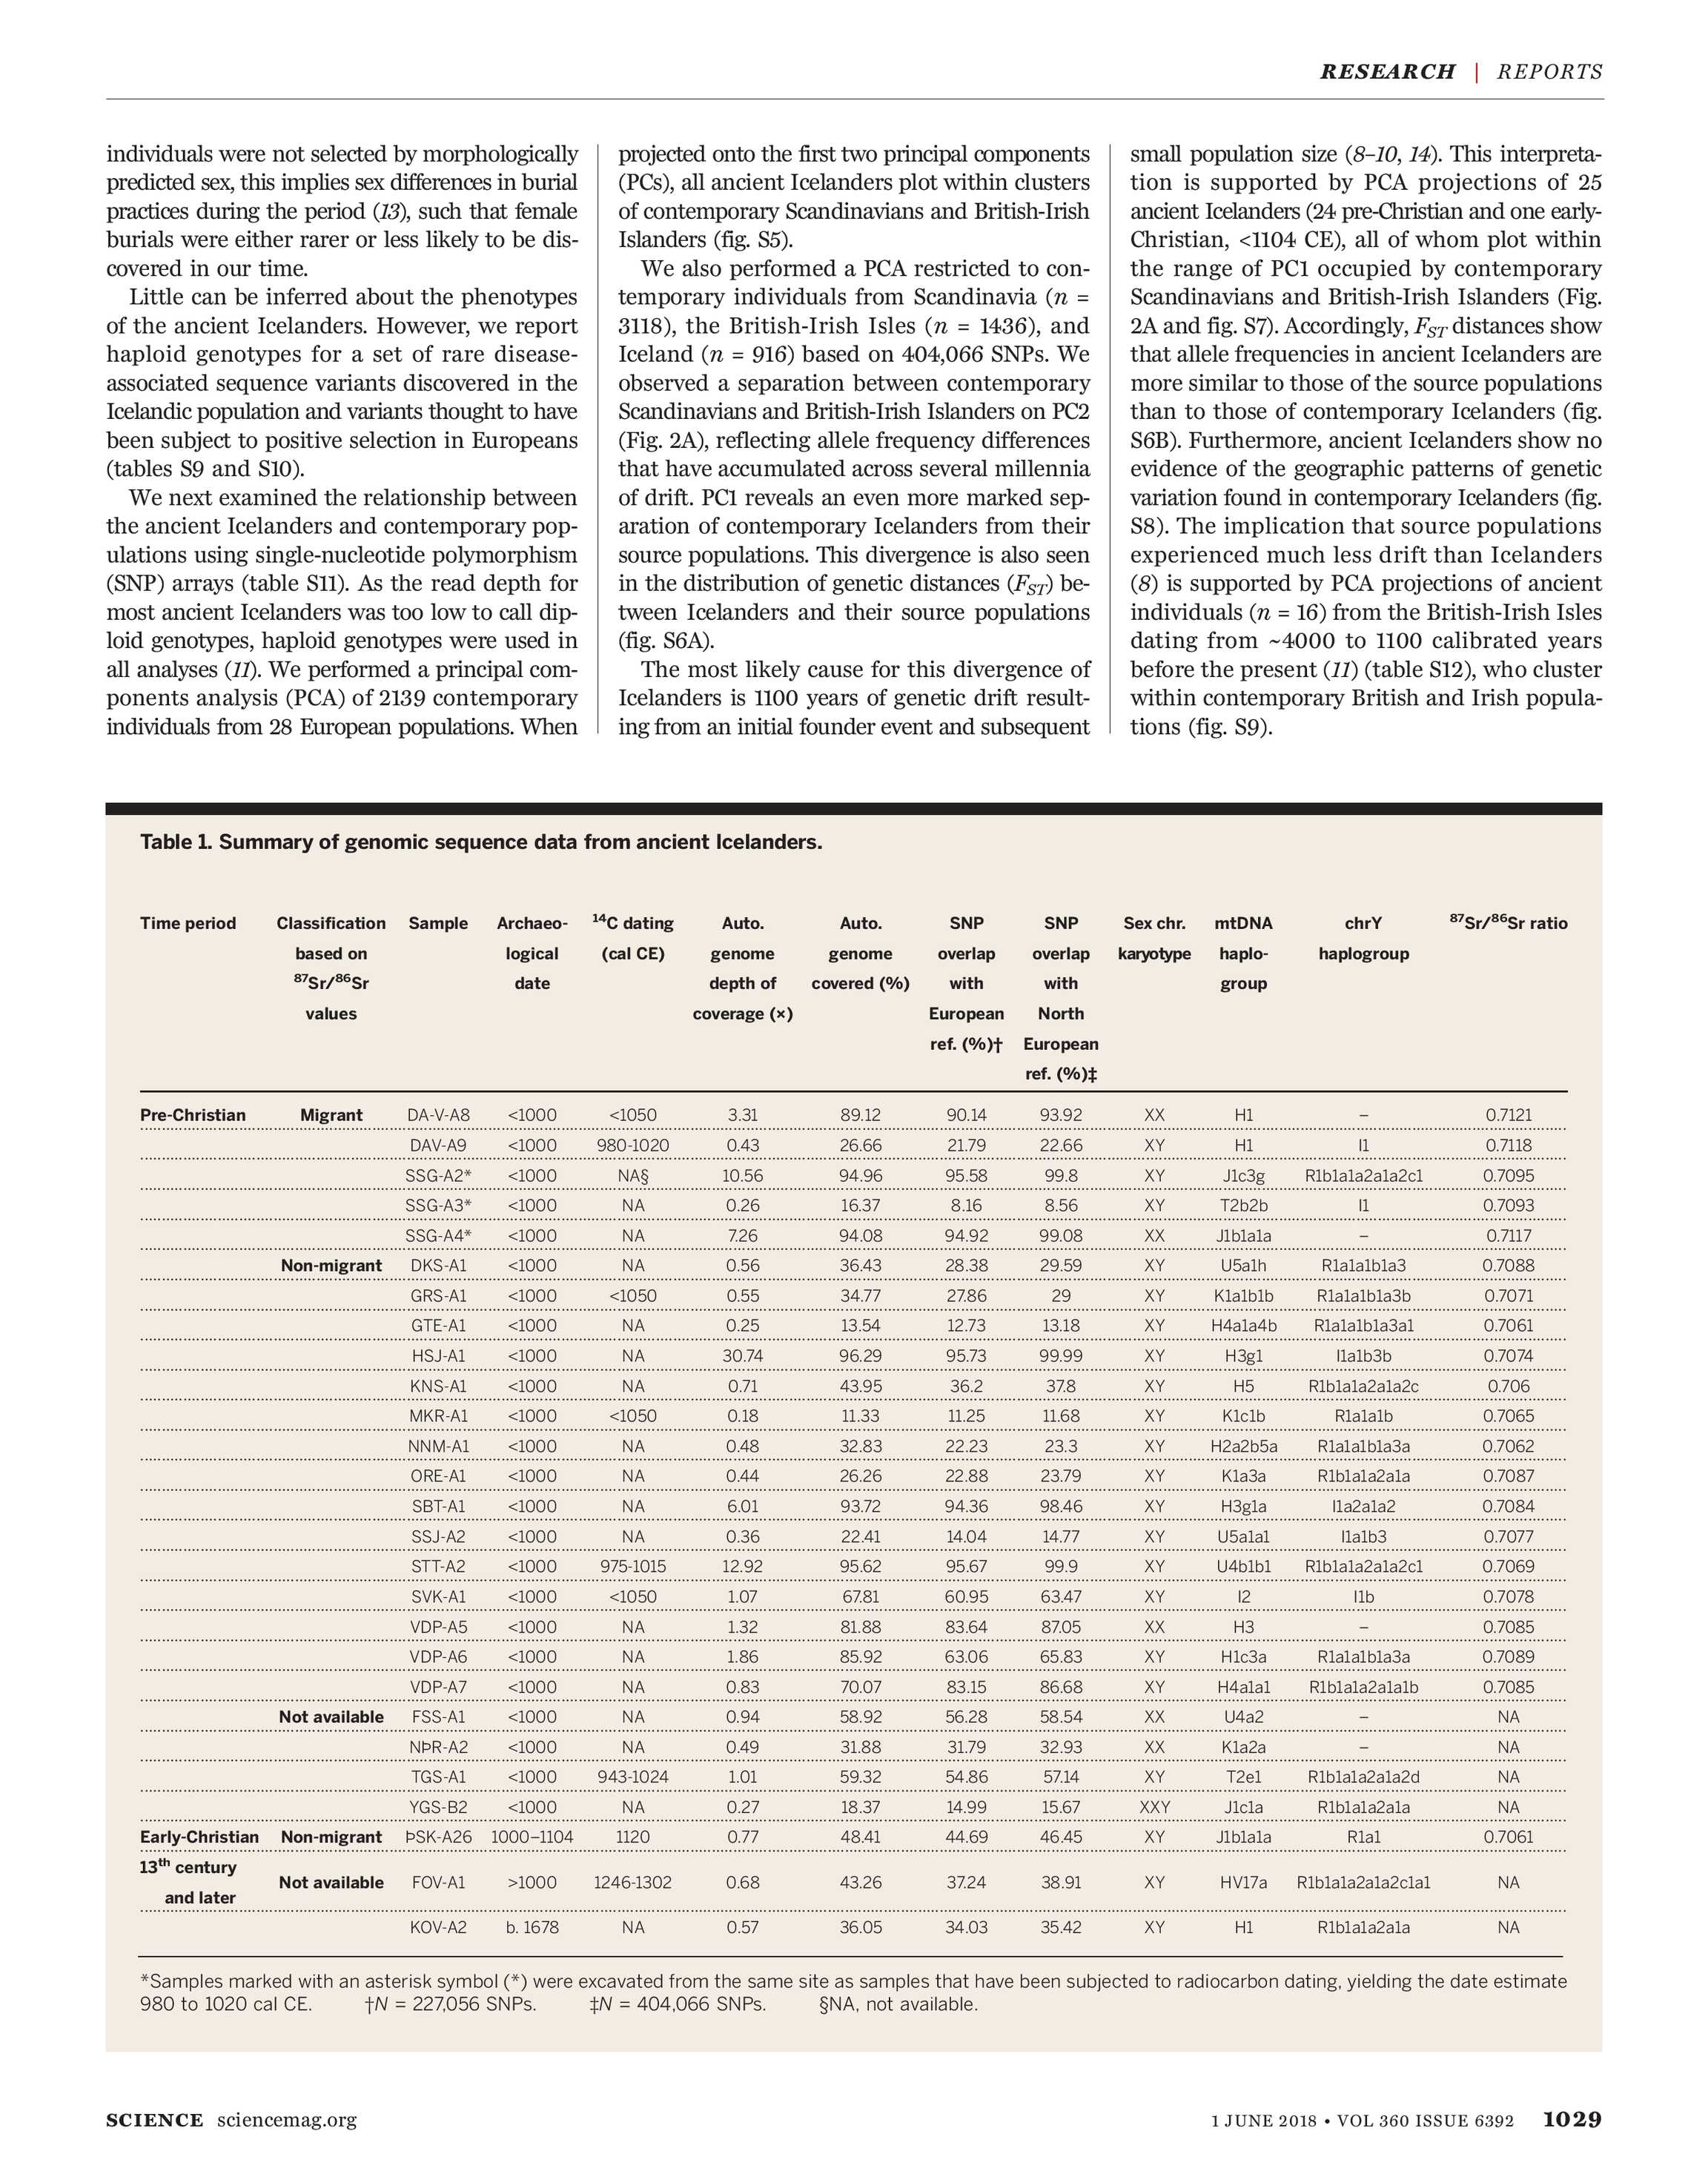 Science Magazine - June 1, 2018 - page 1028